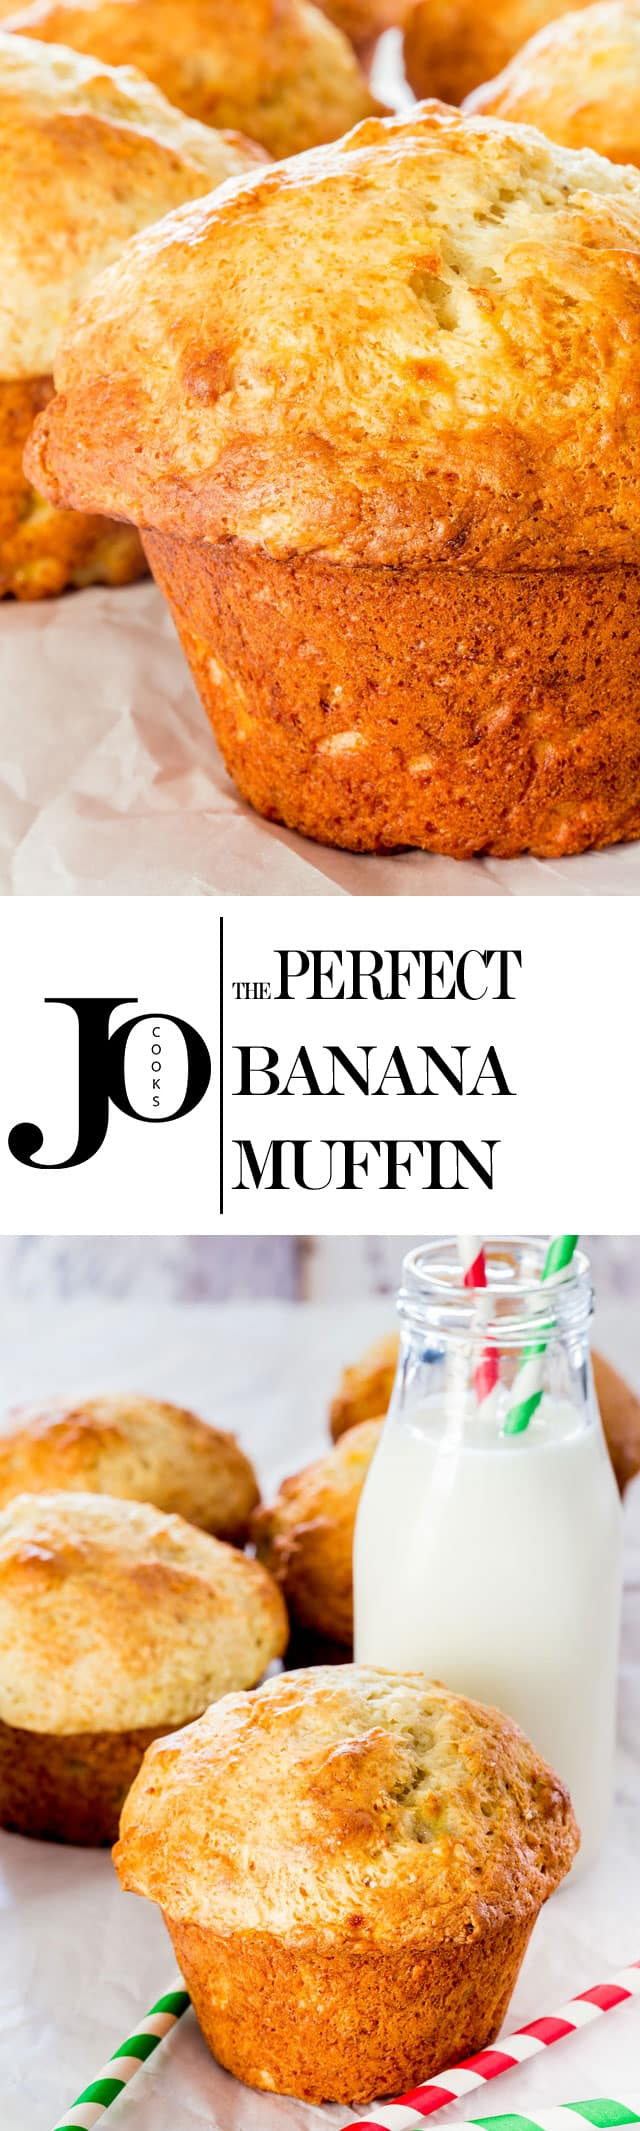 the-perfect-banana-muffin